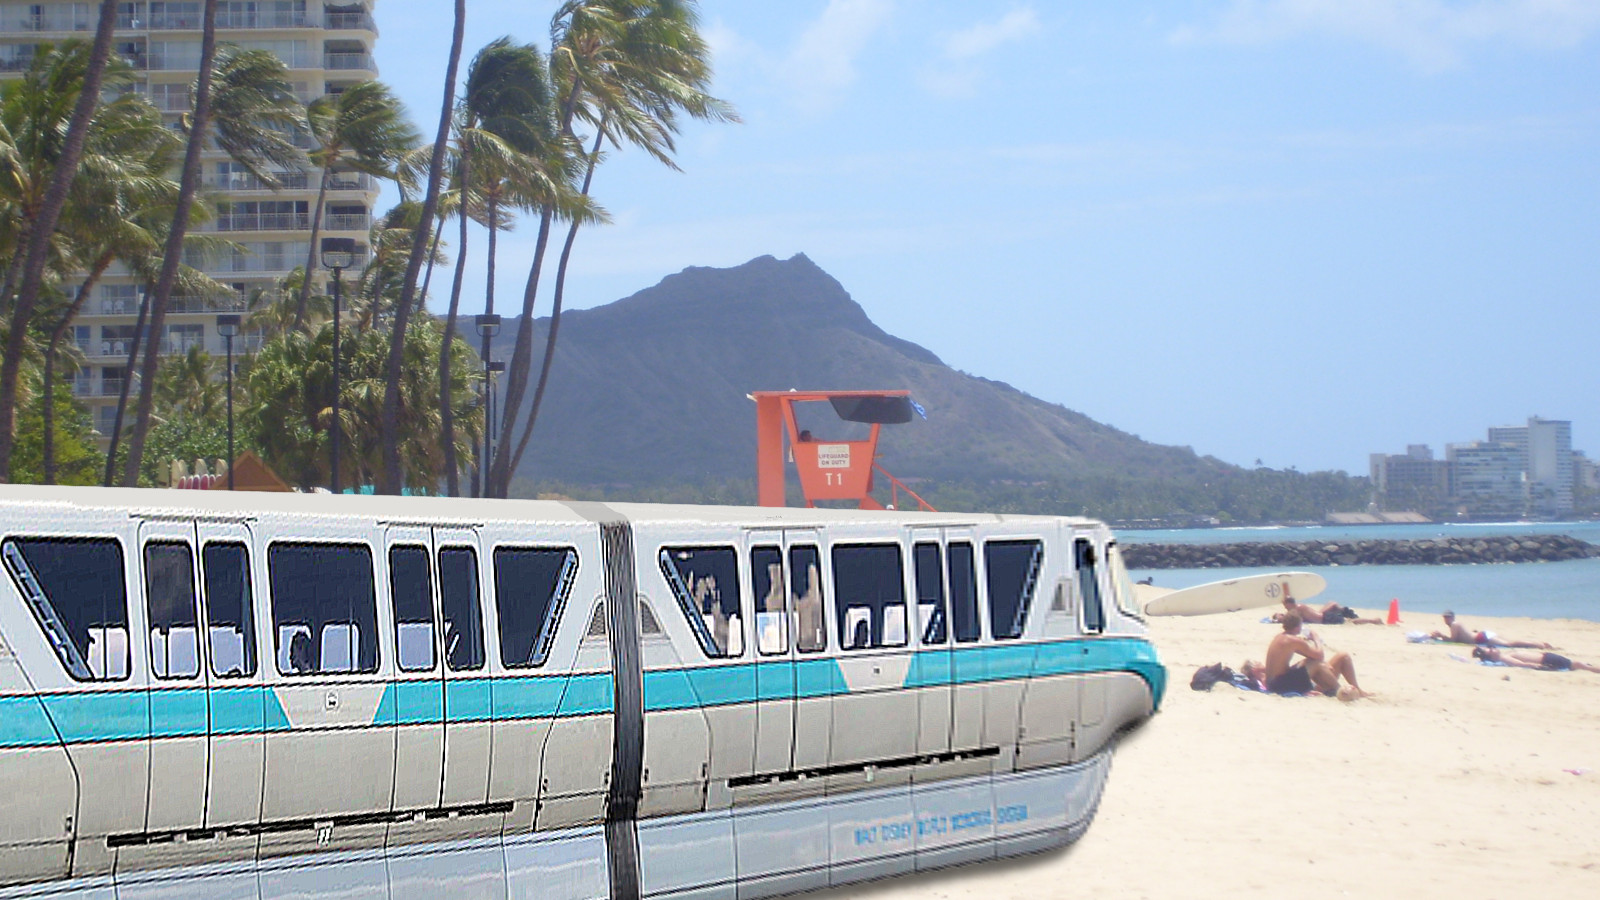 The monorail catches some rays on Waikiki Beach. Photo by Jackie Gleason [CC0] via Wikimedia Commons.